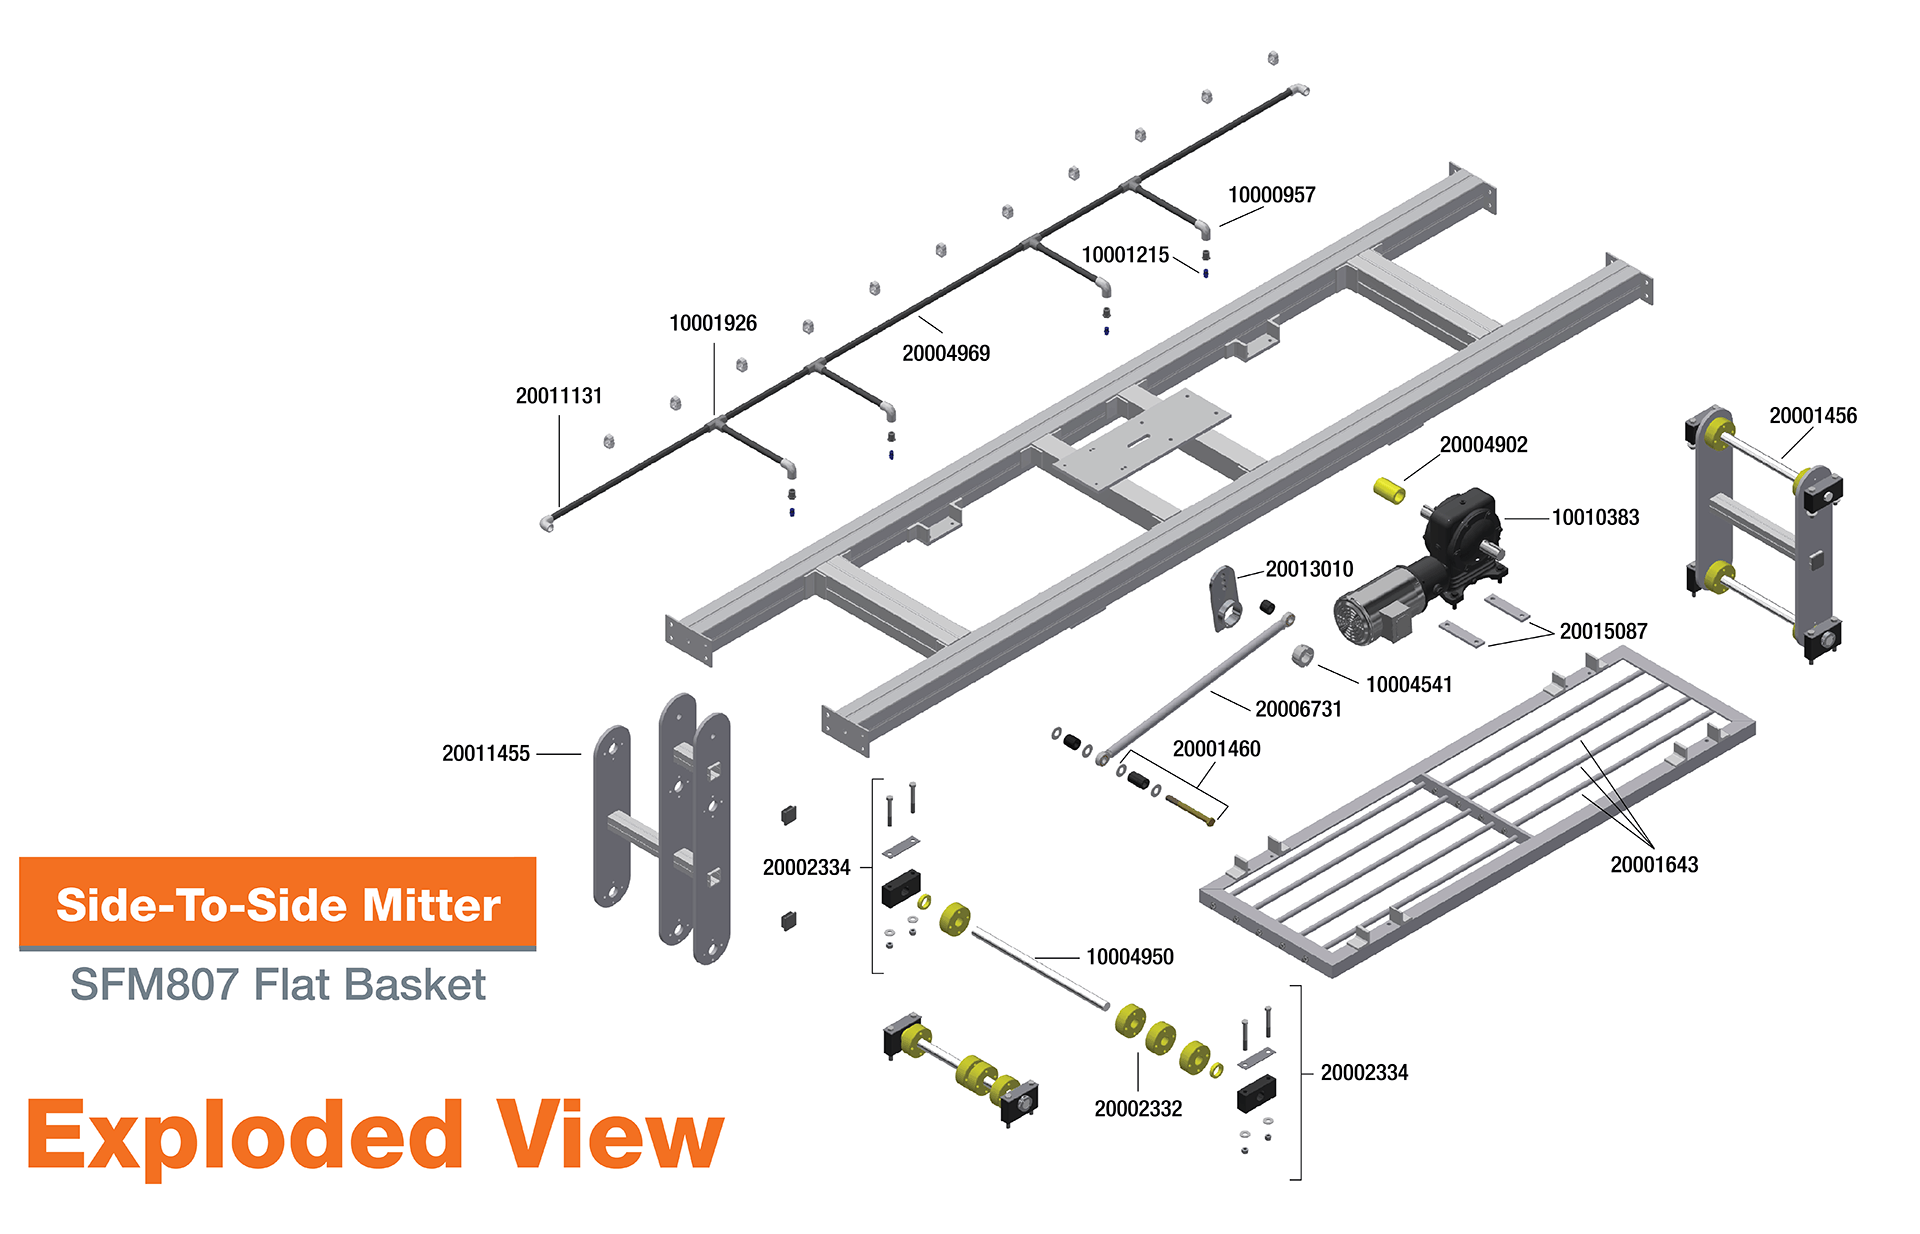 SFM807 Side to Side Mitter Exploded View